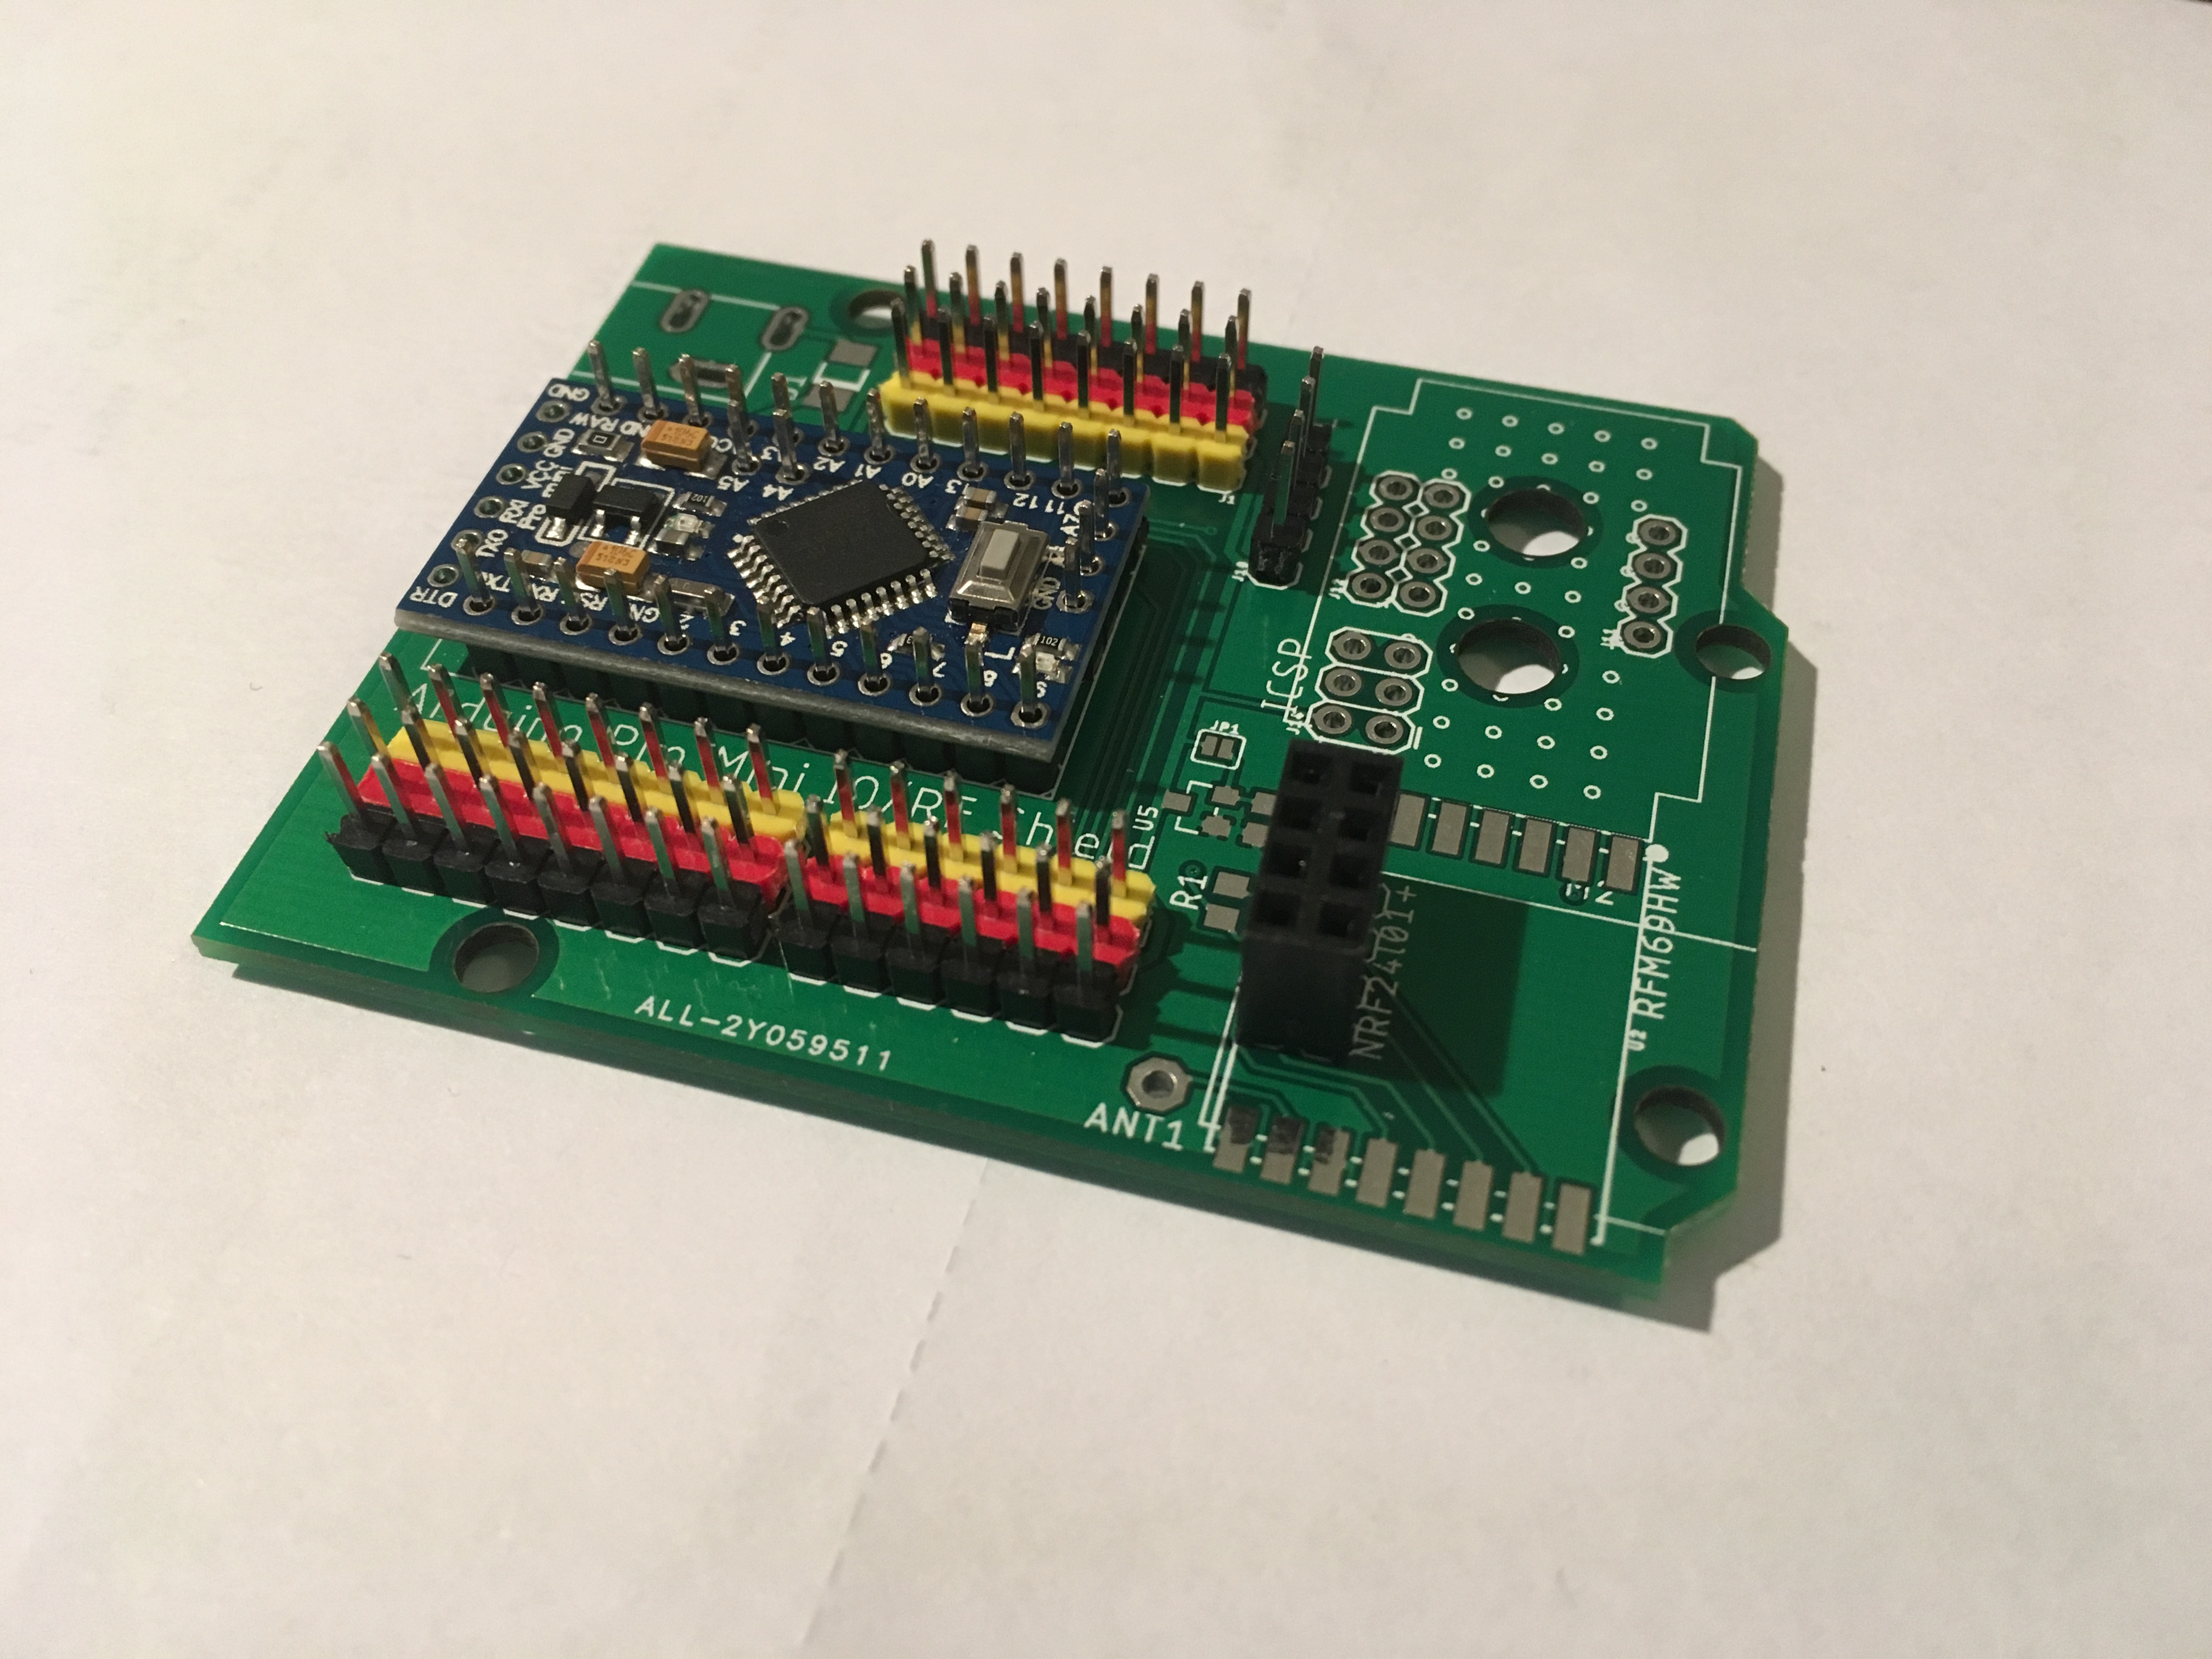 Pro Mini IO shield for quick prototyping